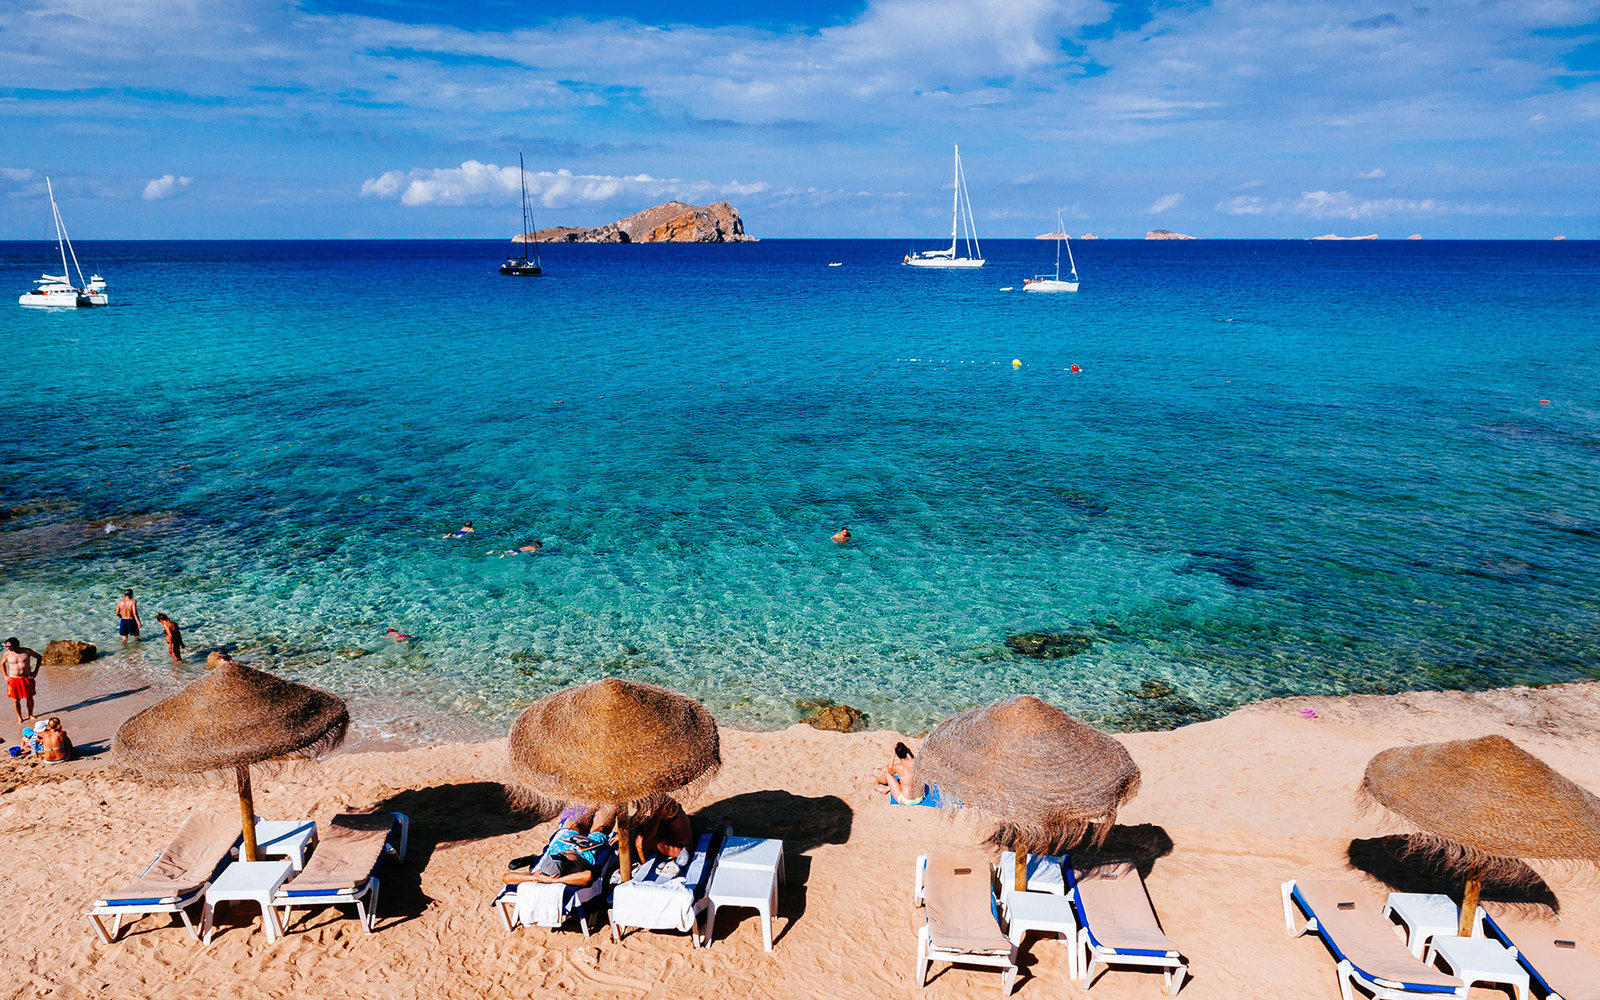 IBIZA, BALEARIC ISLANDS, SPAIN - 2014/08/30: Cala Compte beach. (Photo by Raquel Maria Carbonell Pagola/LightRocket via Getty Images)